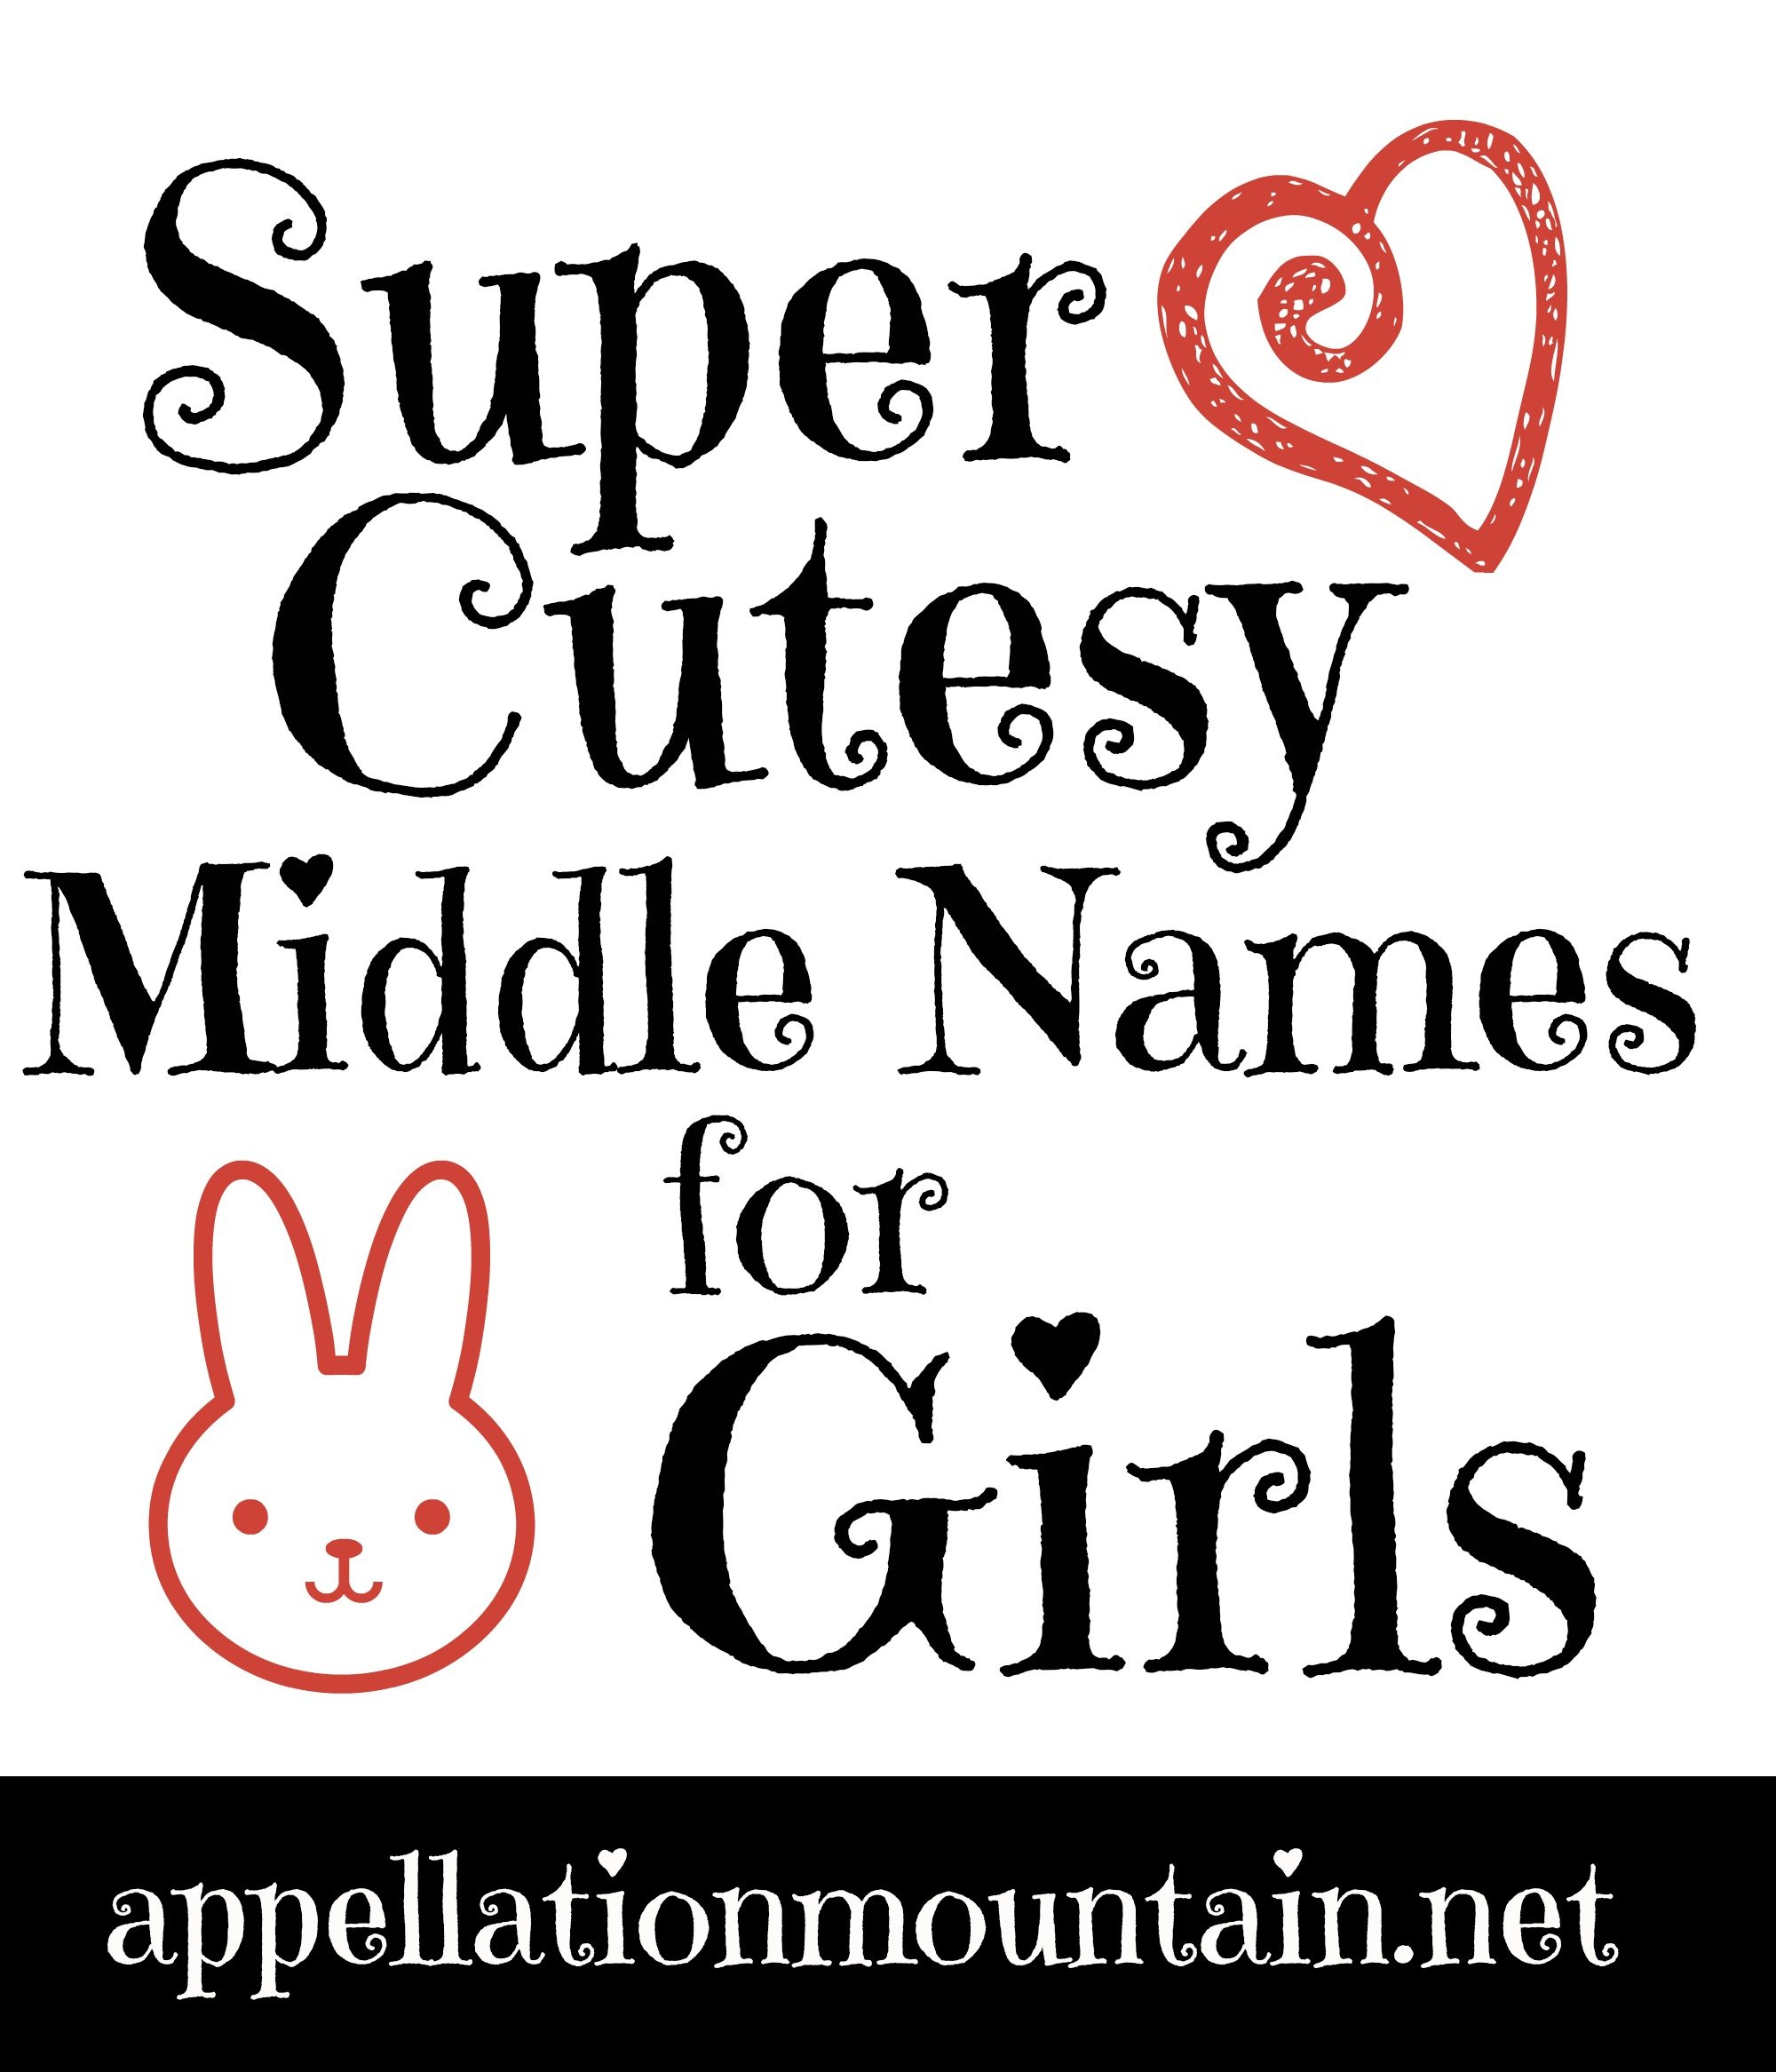 poppet boo and sweetheart cutesy middle names for girls